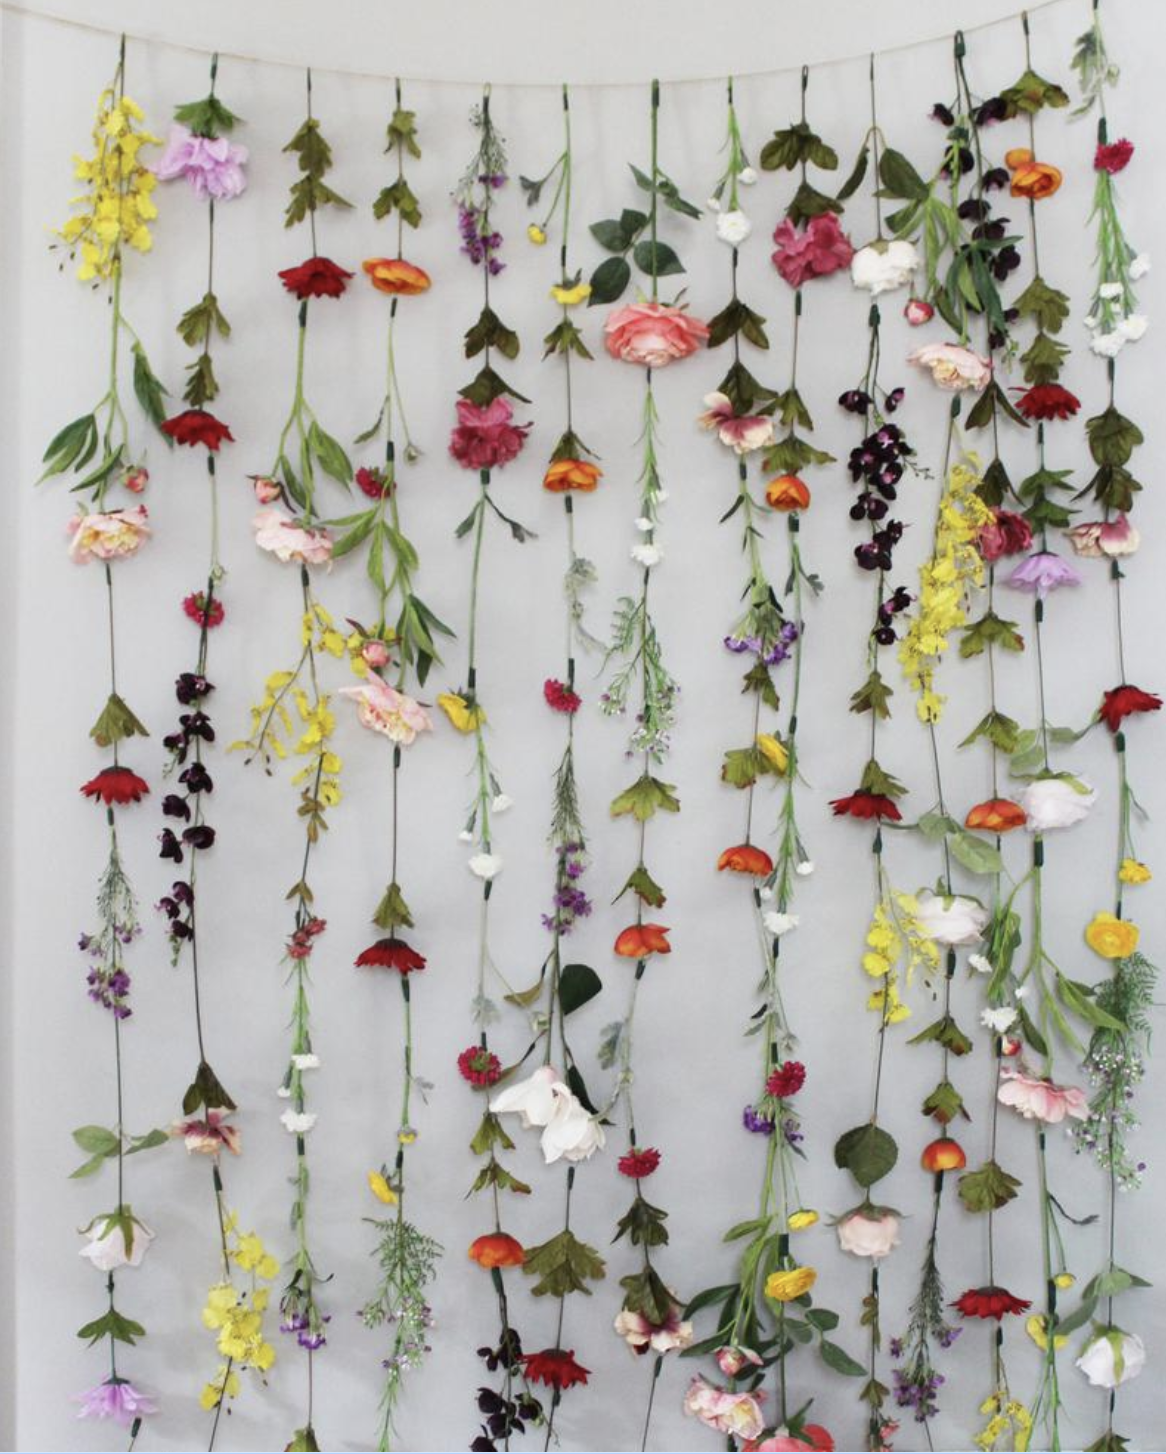 Flower Wall Garlands Are Trending On